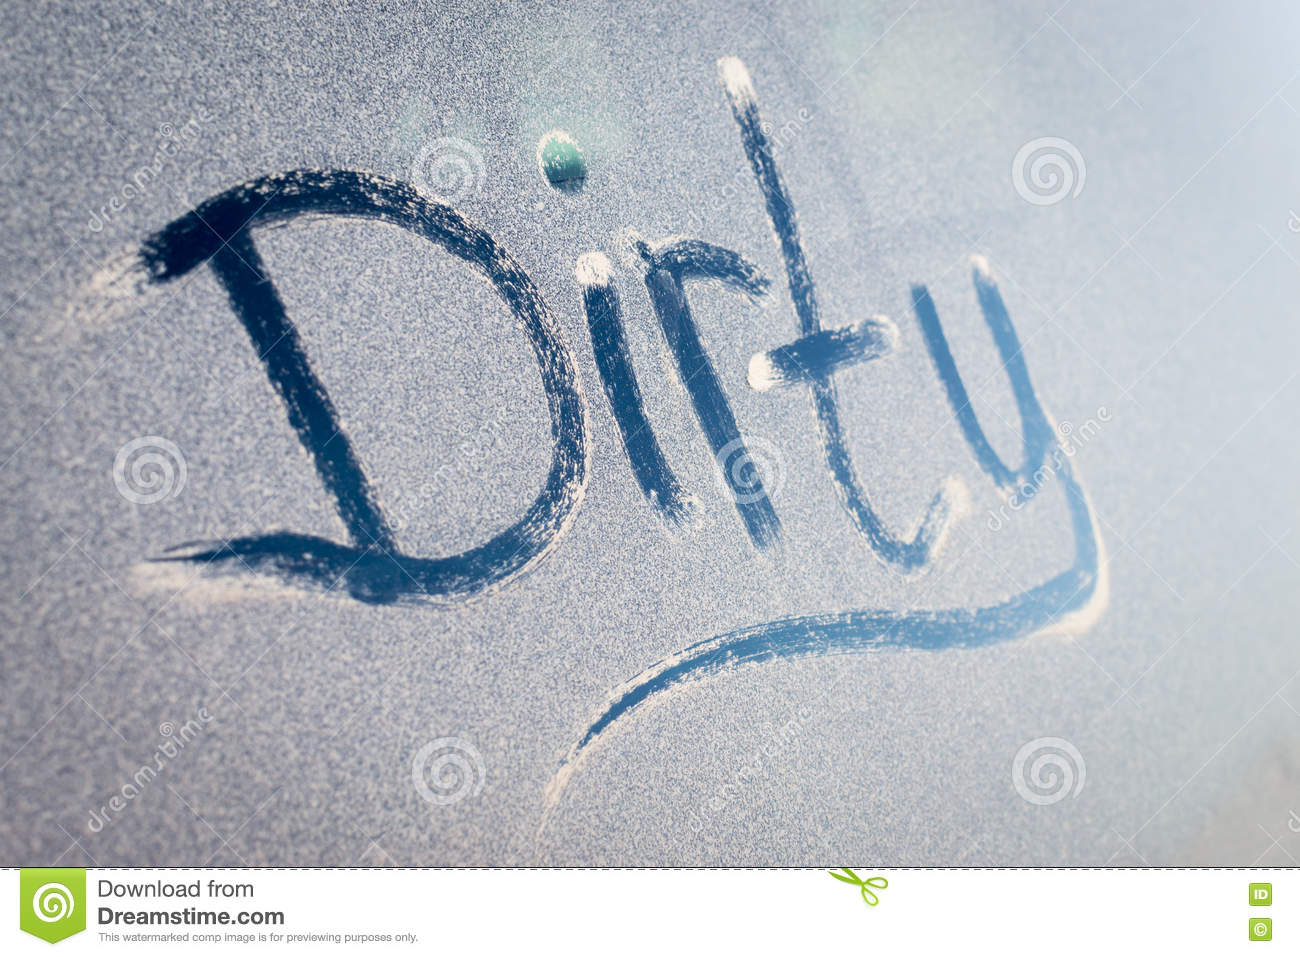 Dirty text on a grubby dust covered window stock photo image of royalty free stock photo biocorpaavc Choice Image